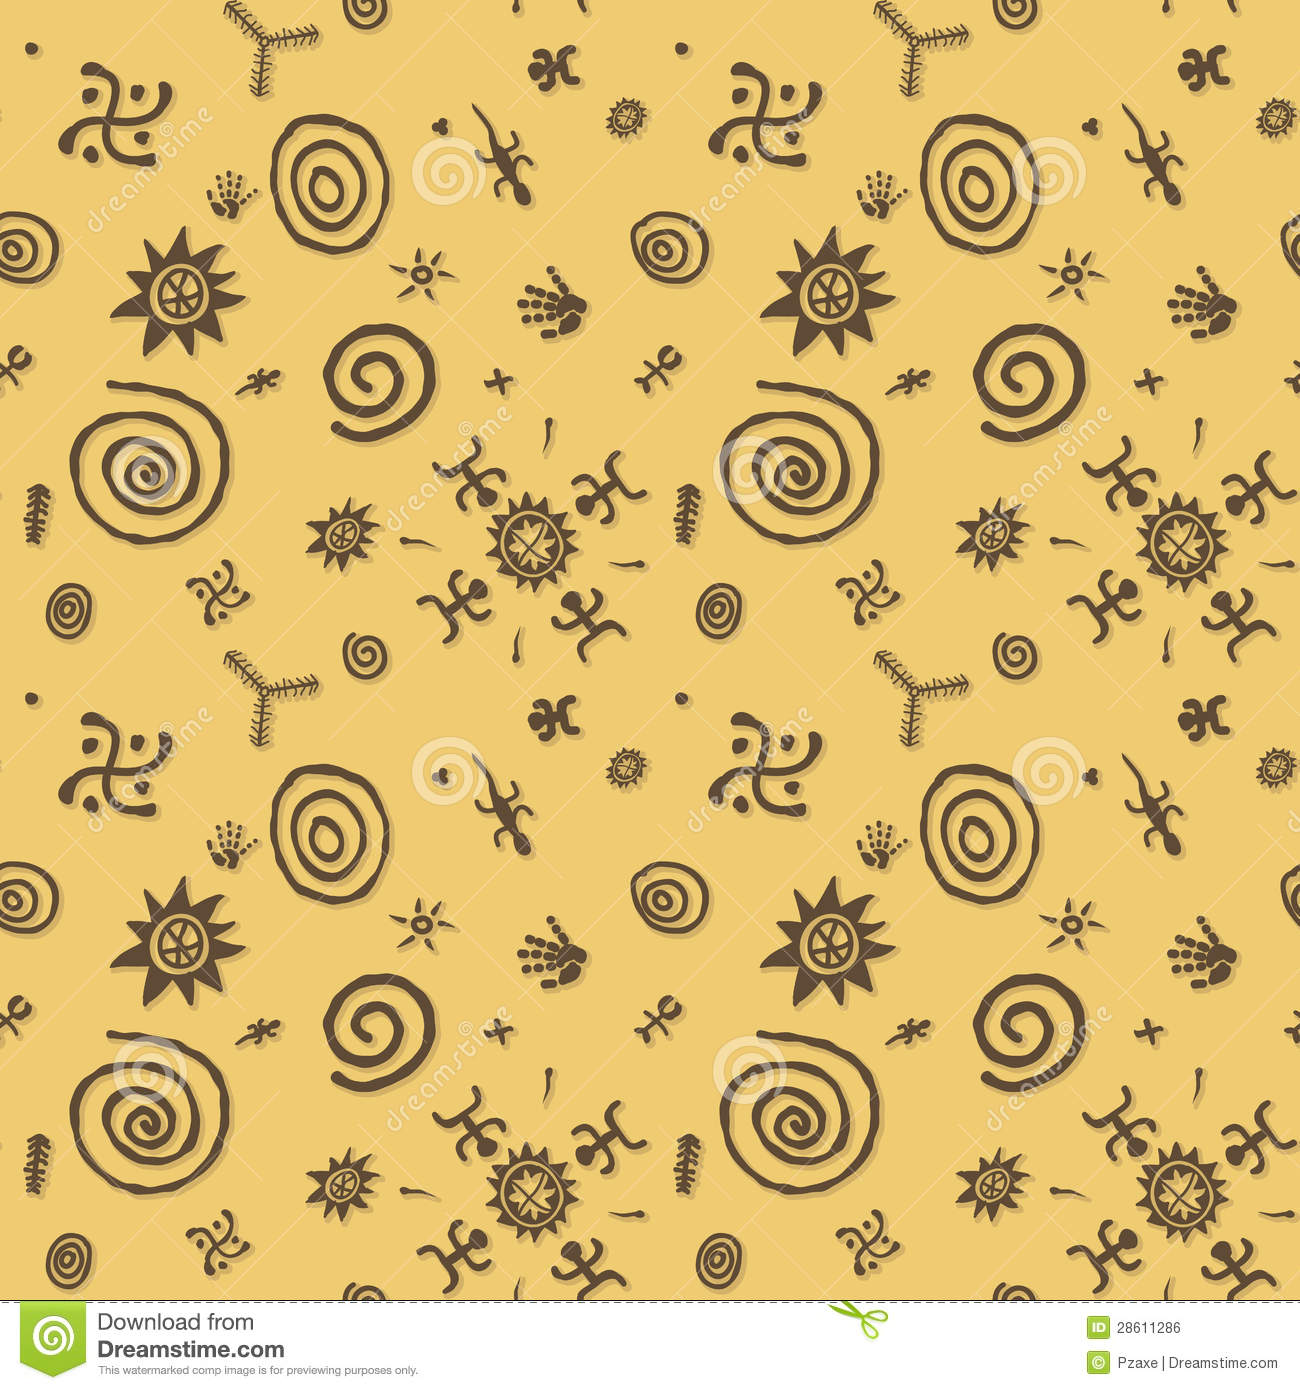 3 symbols in the yellow wallpaper